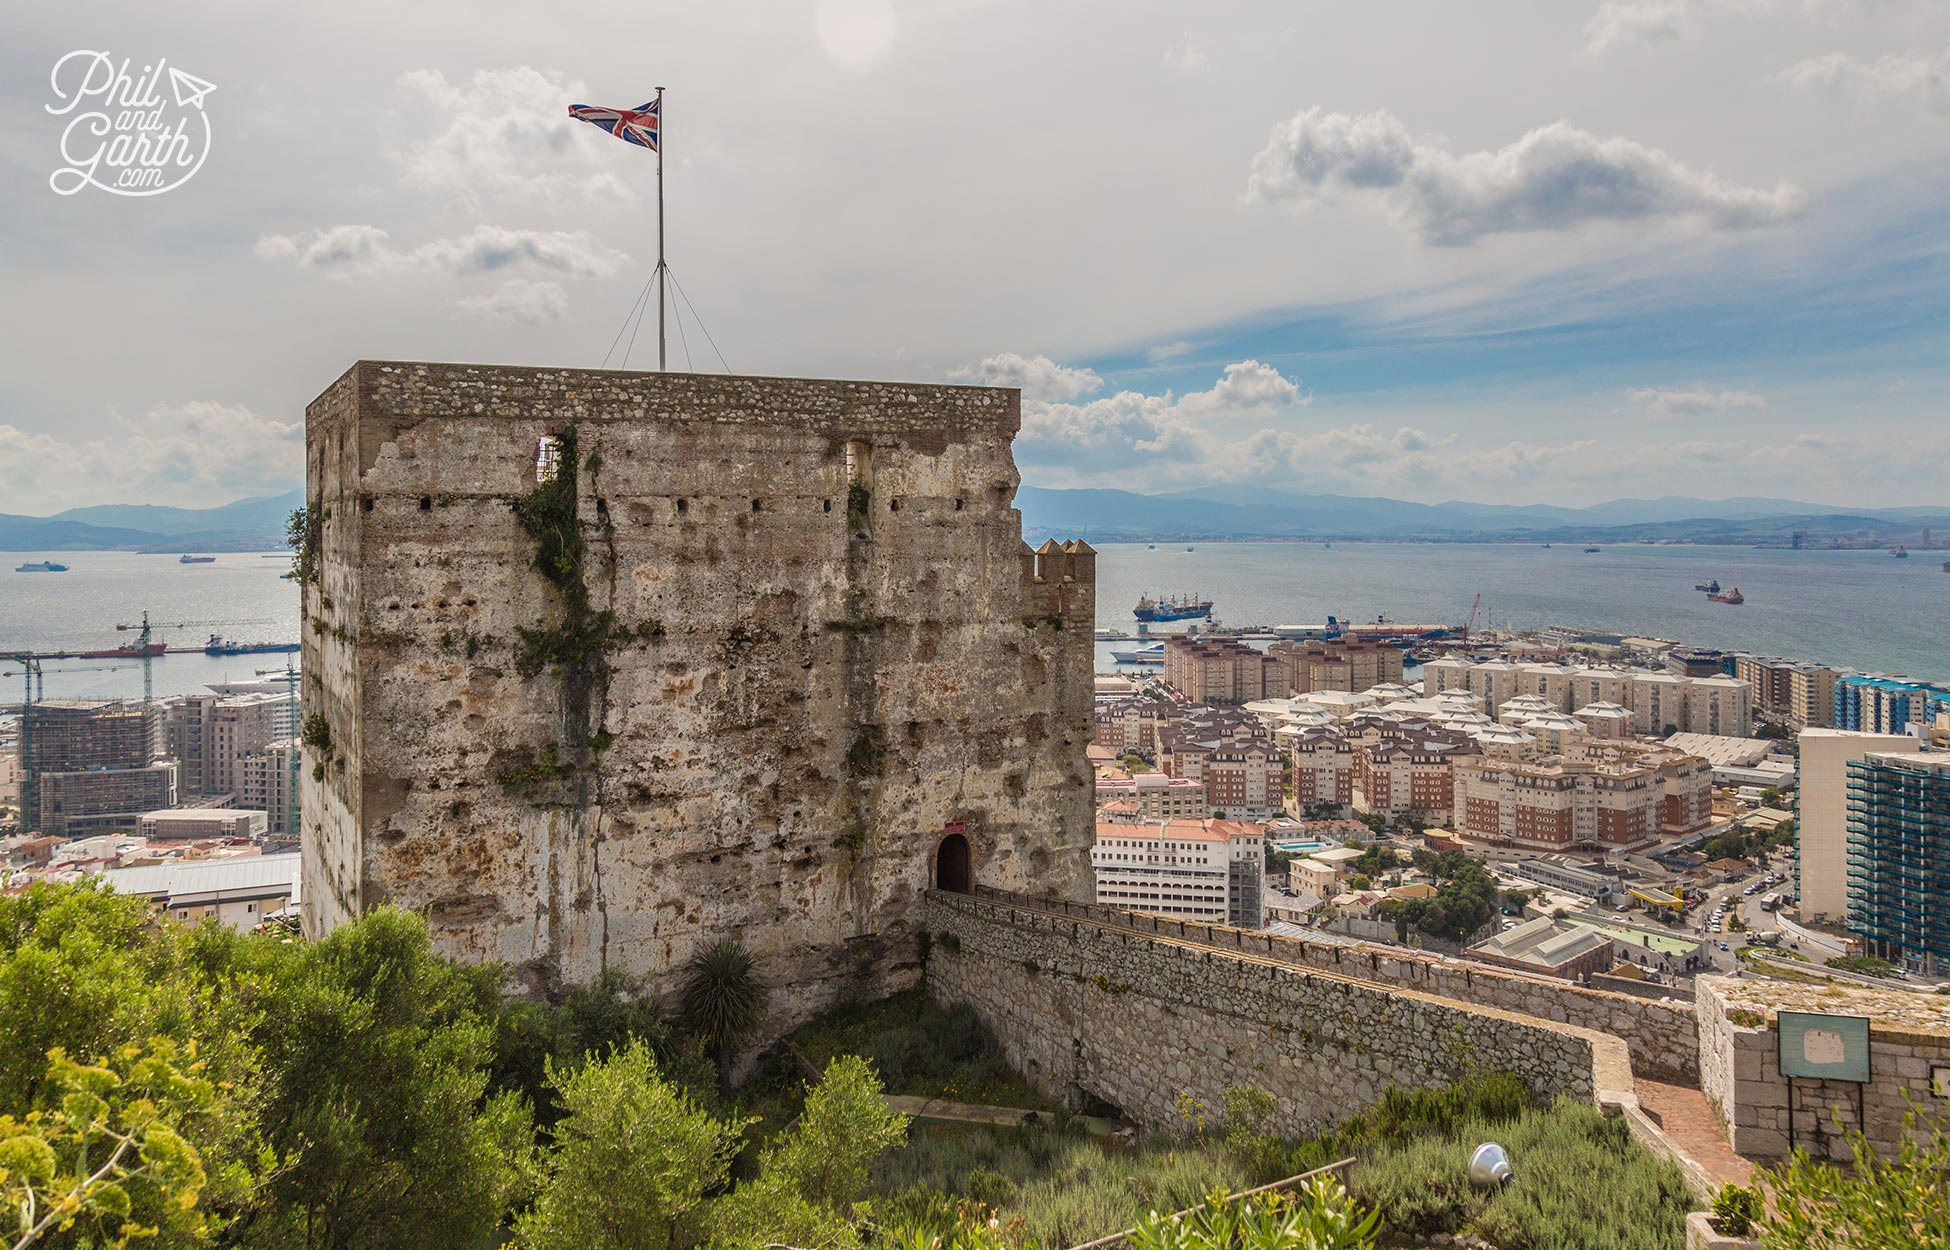 The medieval fortification of the Moorish Castle